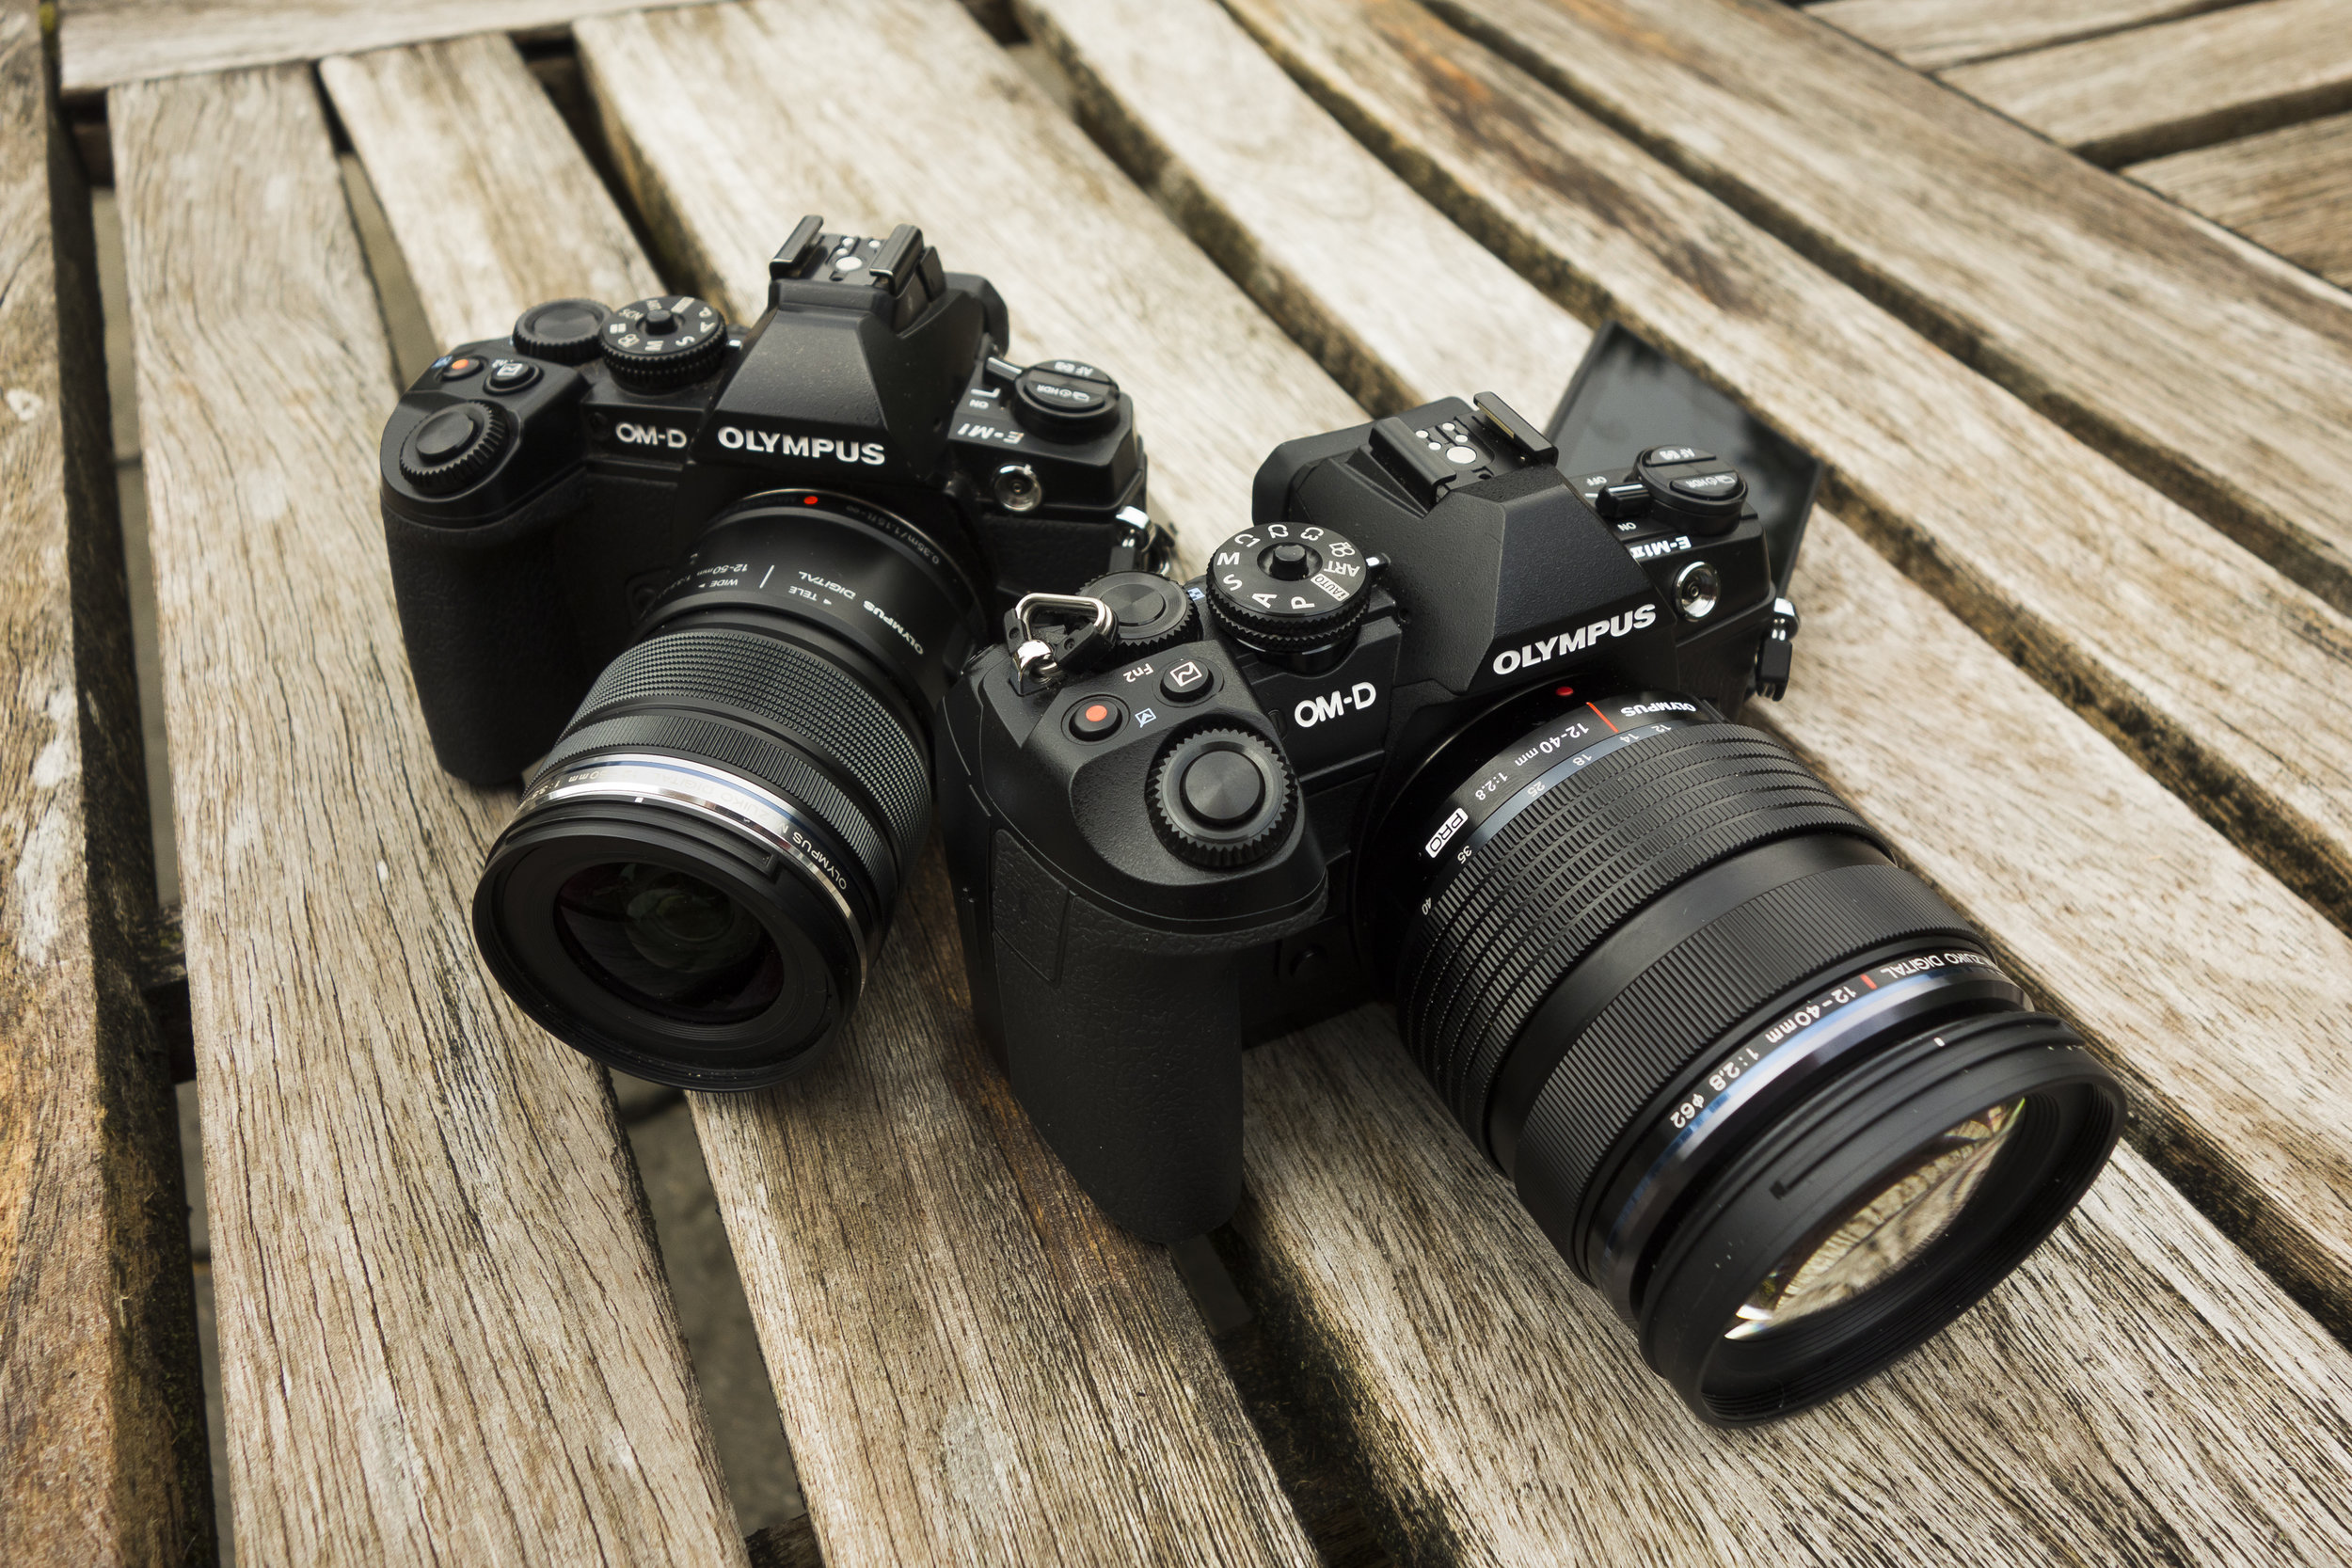 The Olympus OM-D E-M1 Mark II review sample sitting alongside my own Olympus OM-D E-M1